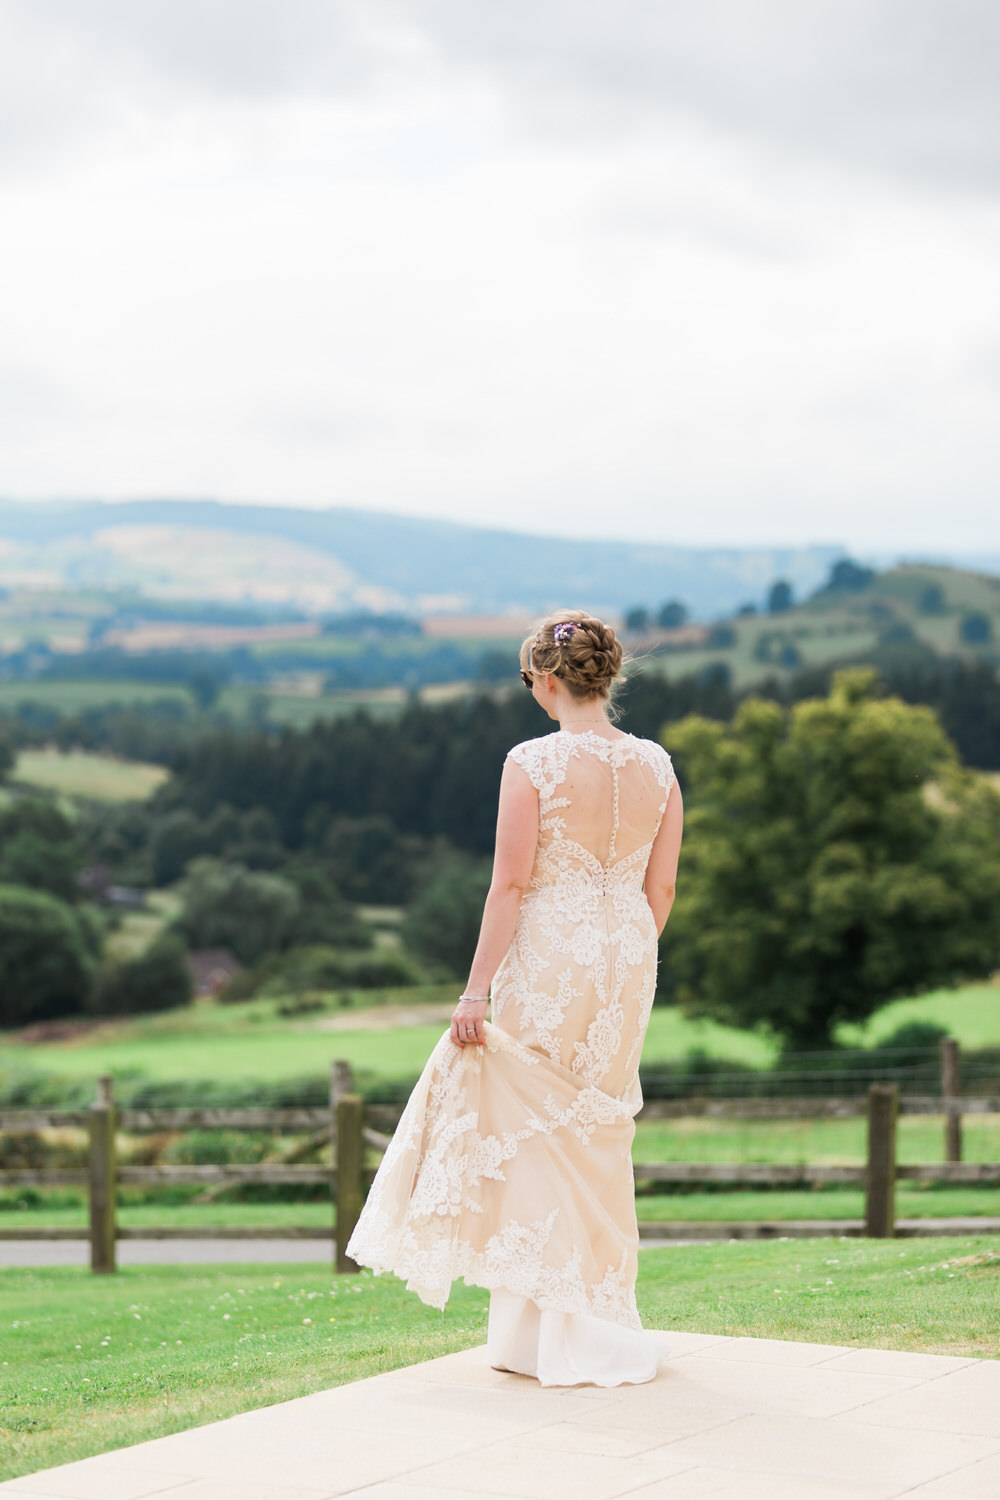 Special-Day-Photography-The-Bringewood-Ludlow-The-Bringewood-Hillside-Wedding-a-bride-looks-out-over-the-hills.jpg